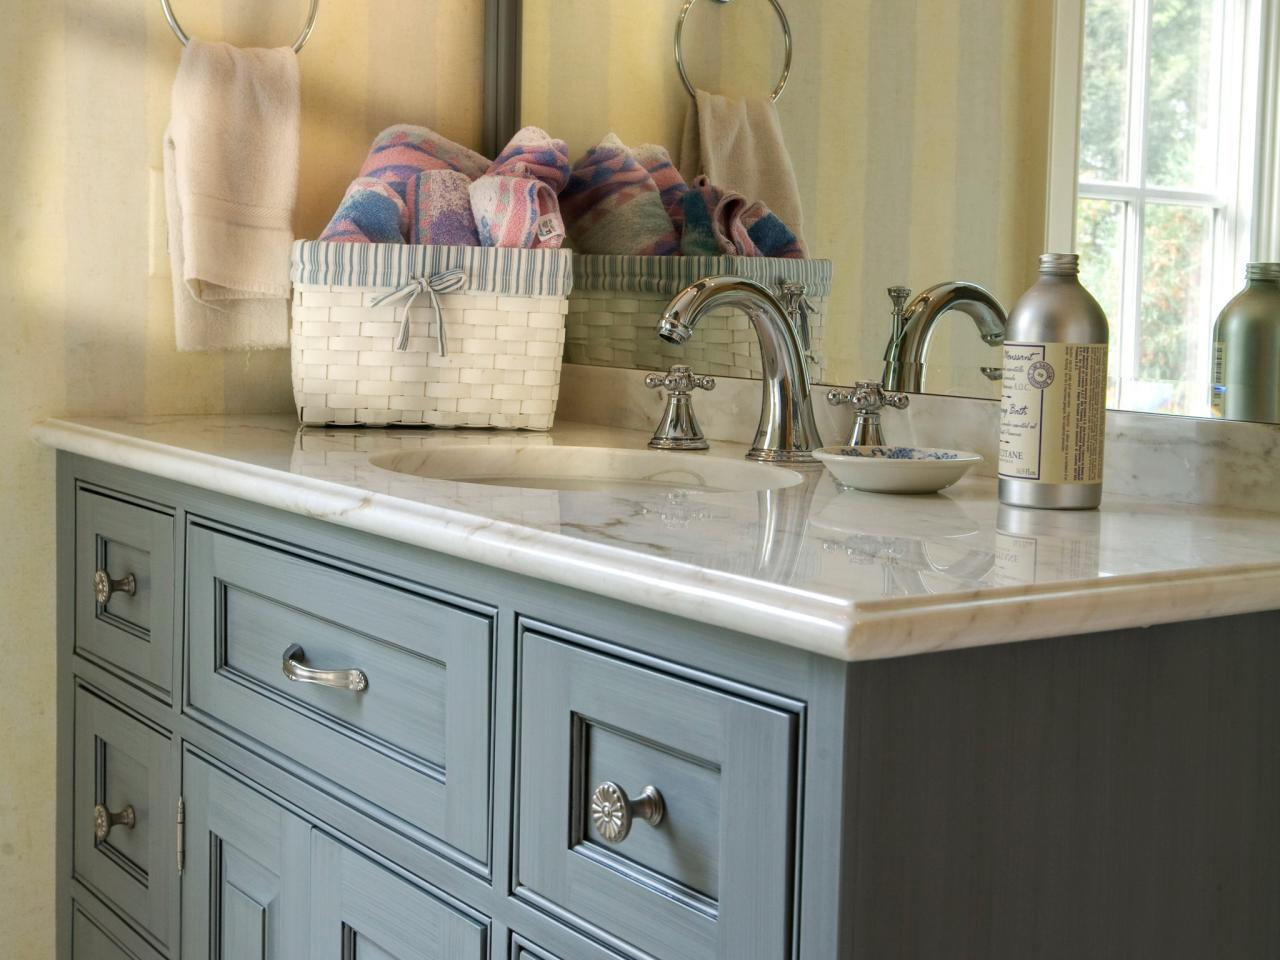 Quartz bathroom countertops -  Honest Review Of The Most Popular Bathroom Surfaces Euroluxe